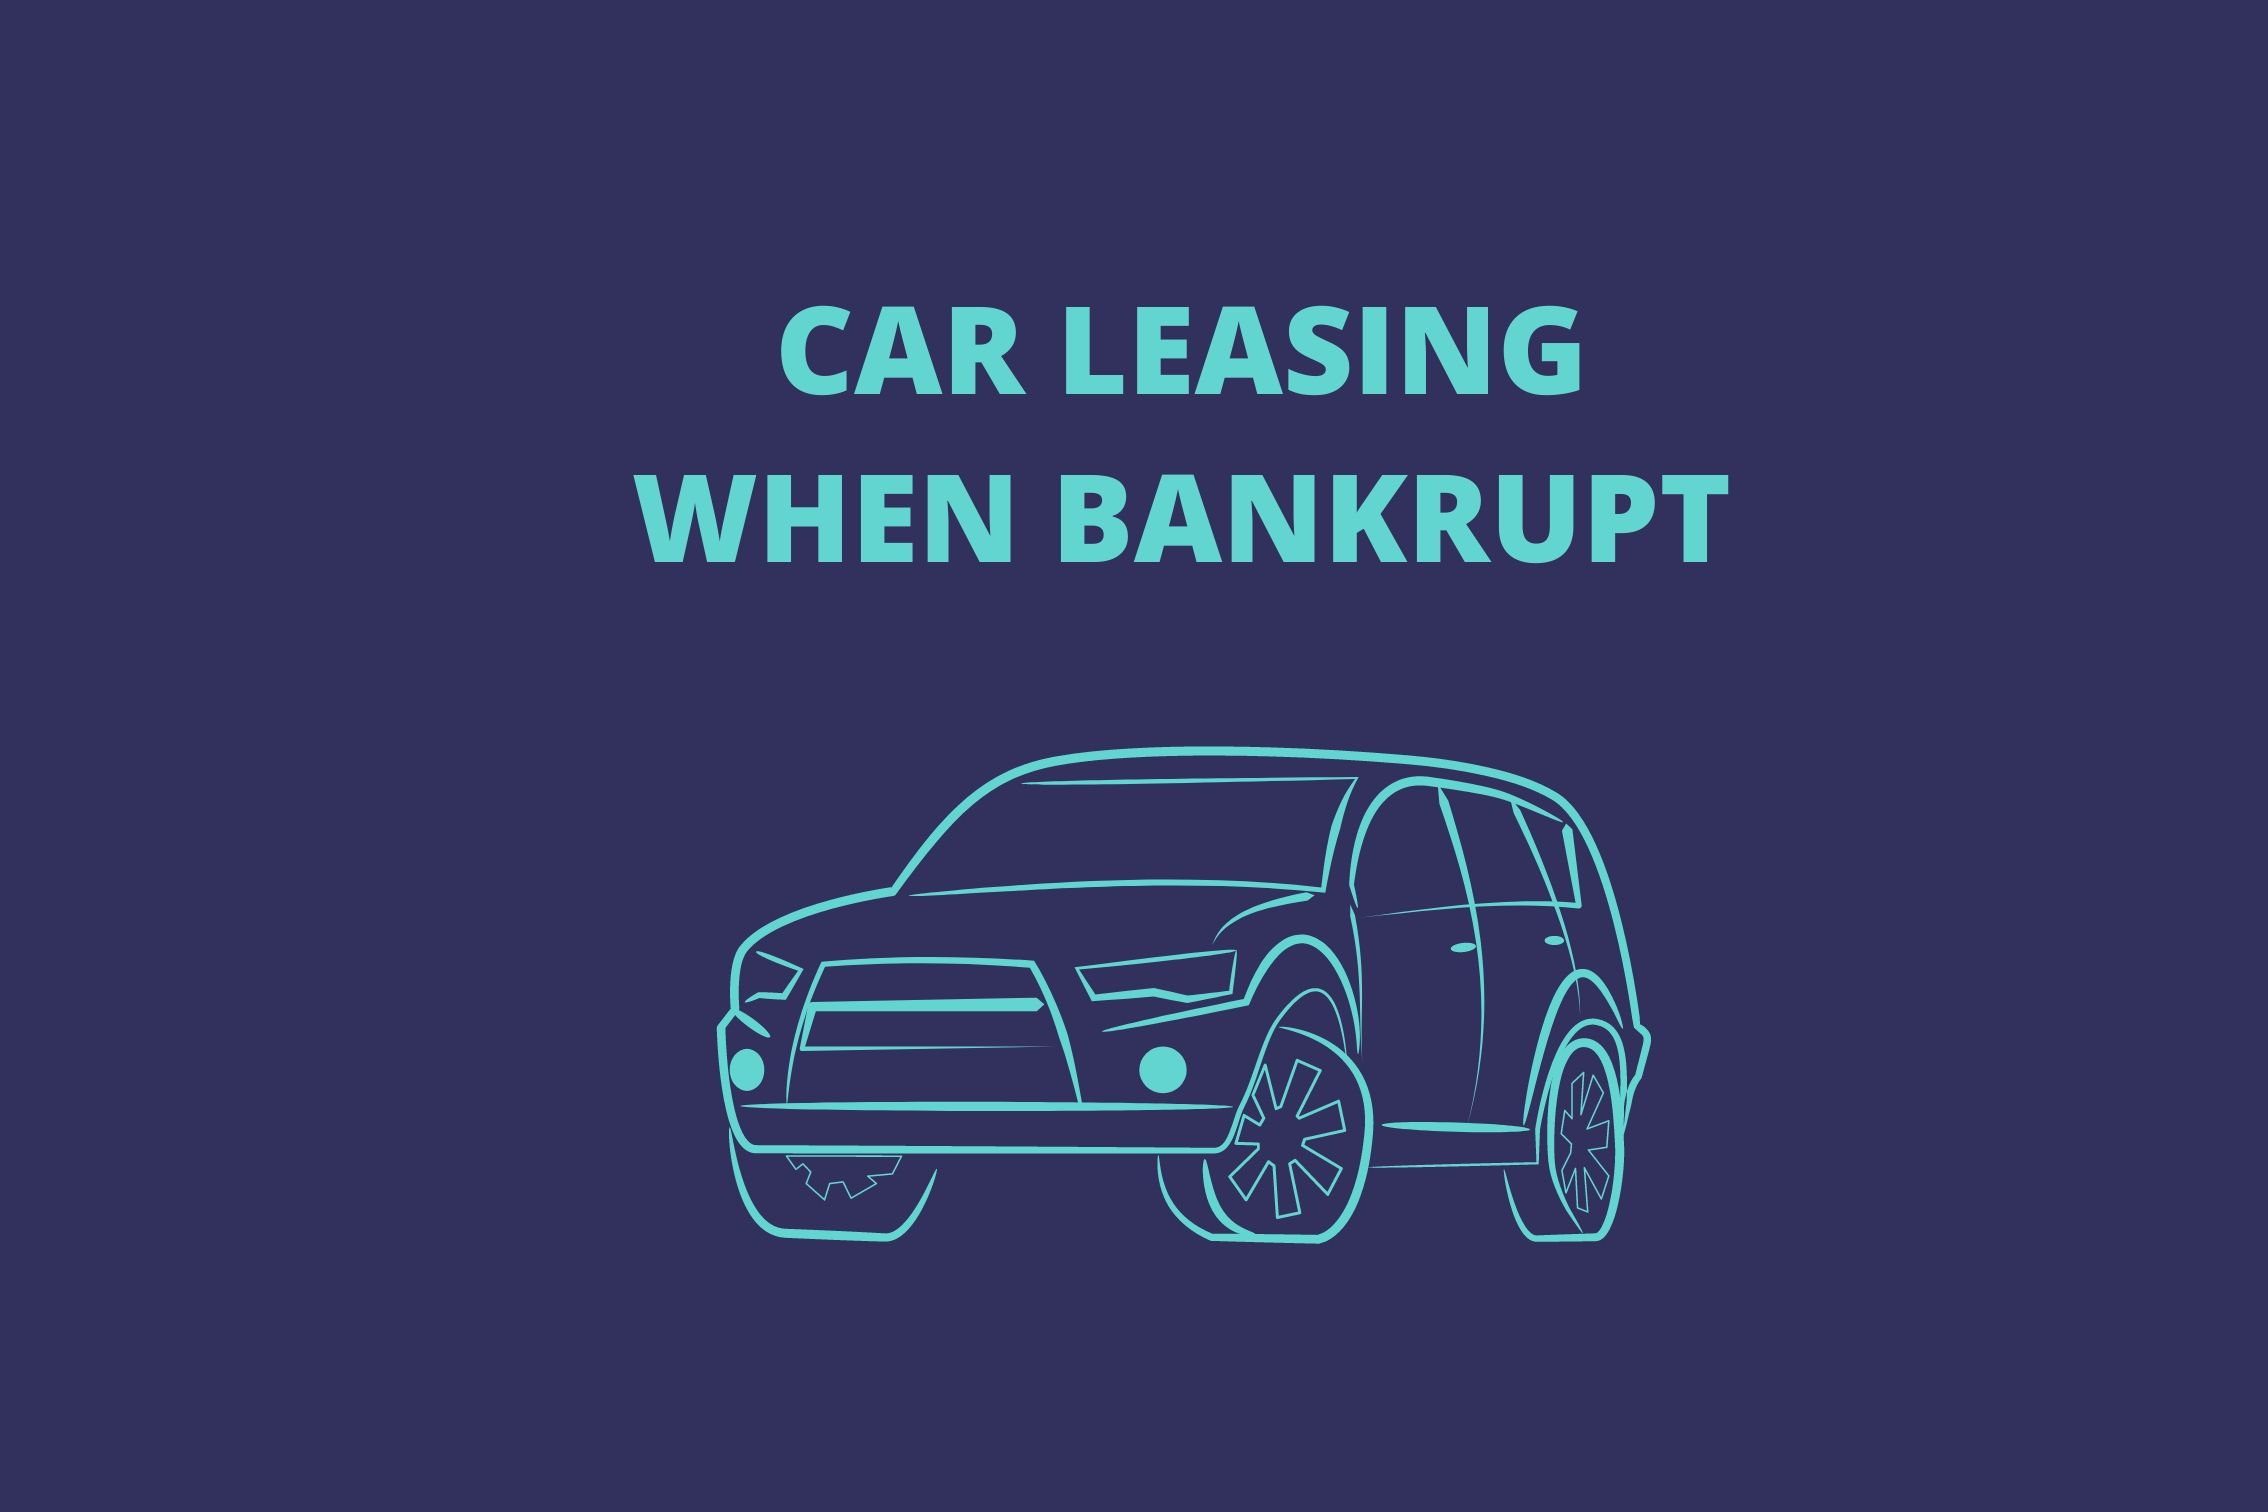 Car Leasing When Bankrupt